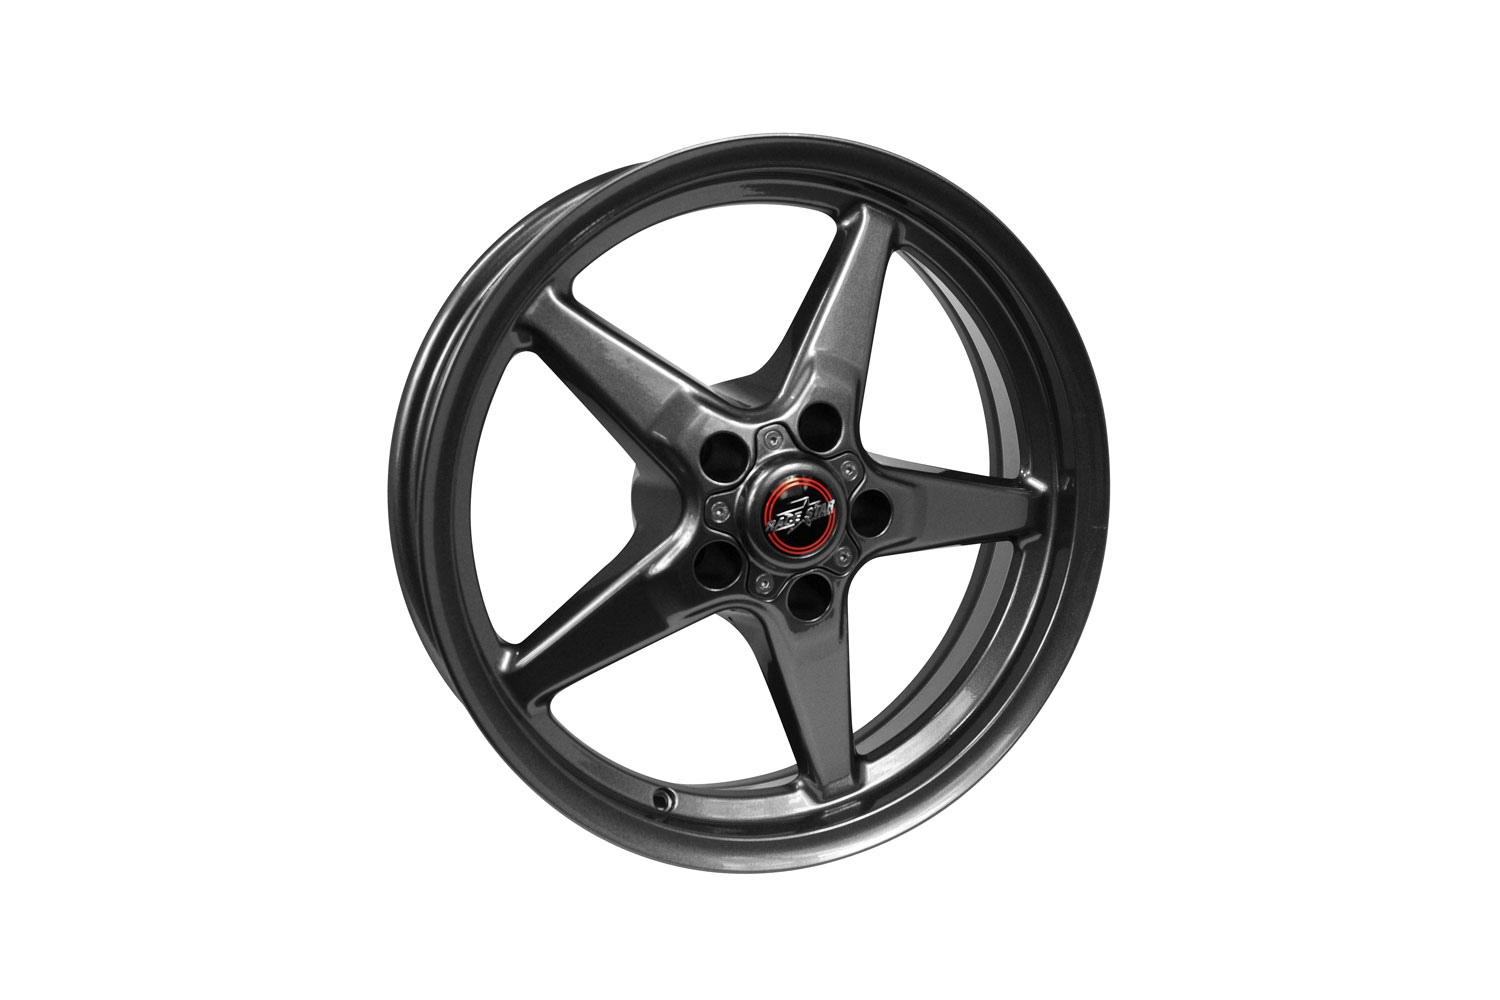 Race Star Wheels Mustang 92 Drag Star Bracket Racer Star Metallic Grey Wheel 15x3.75